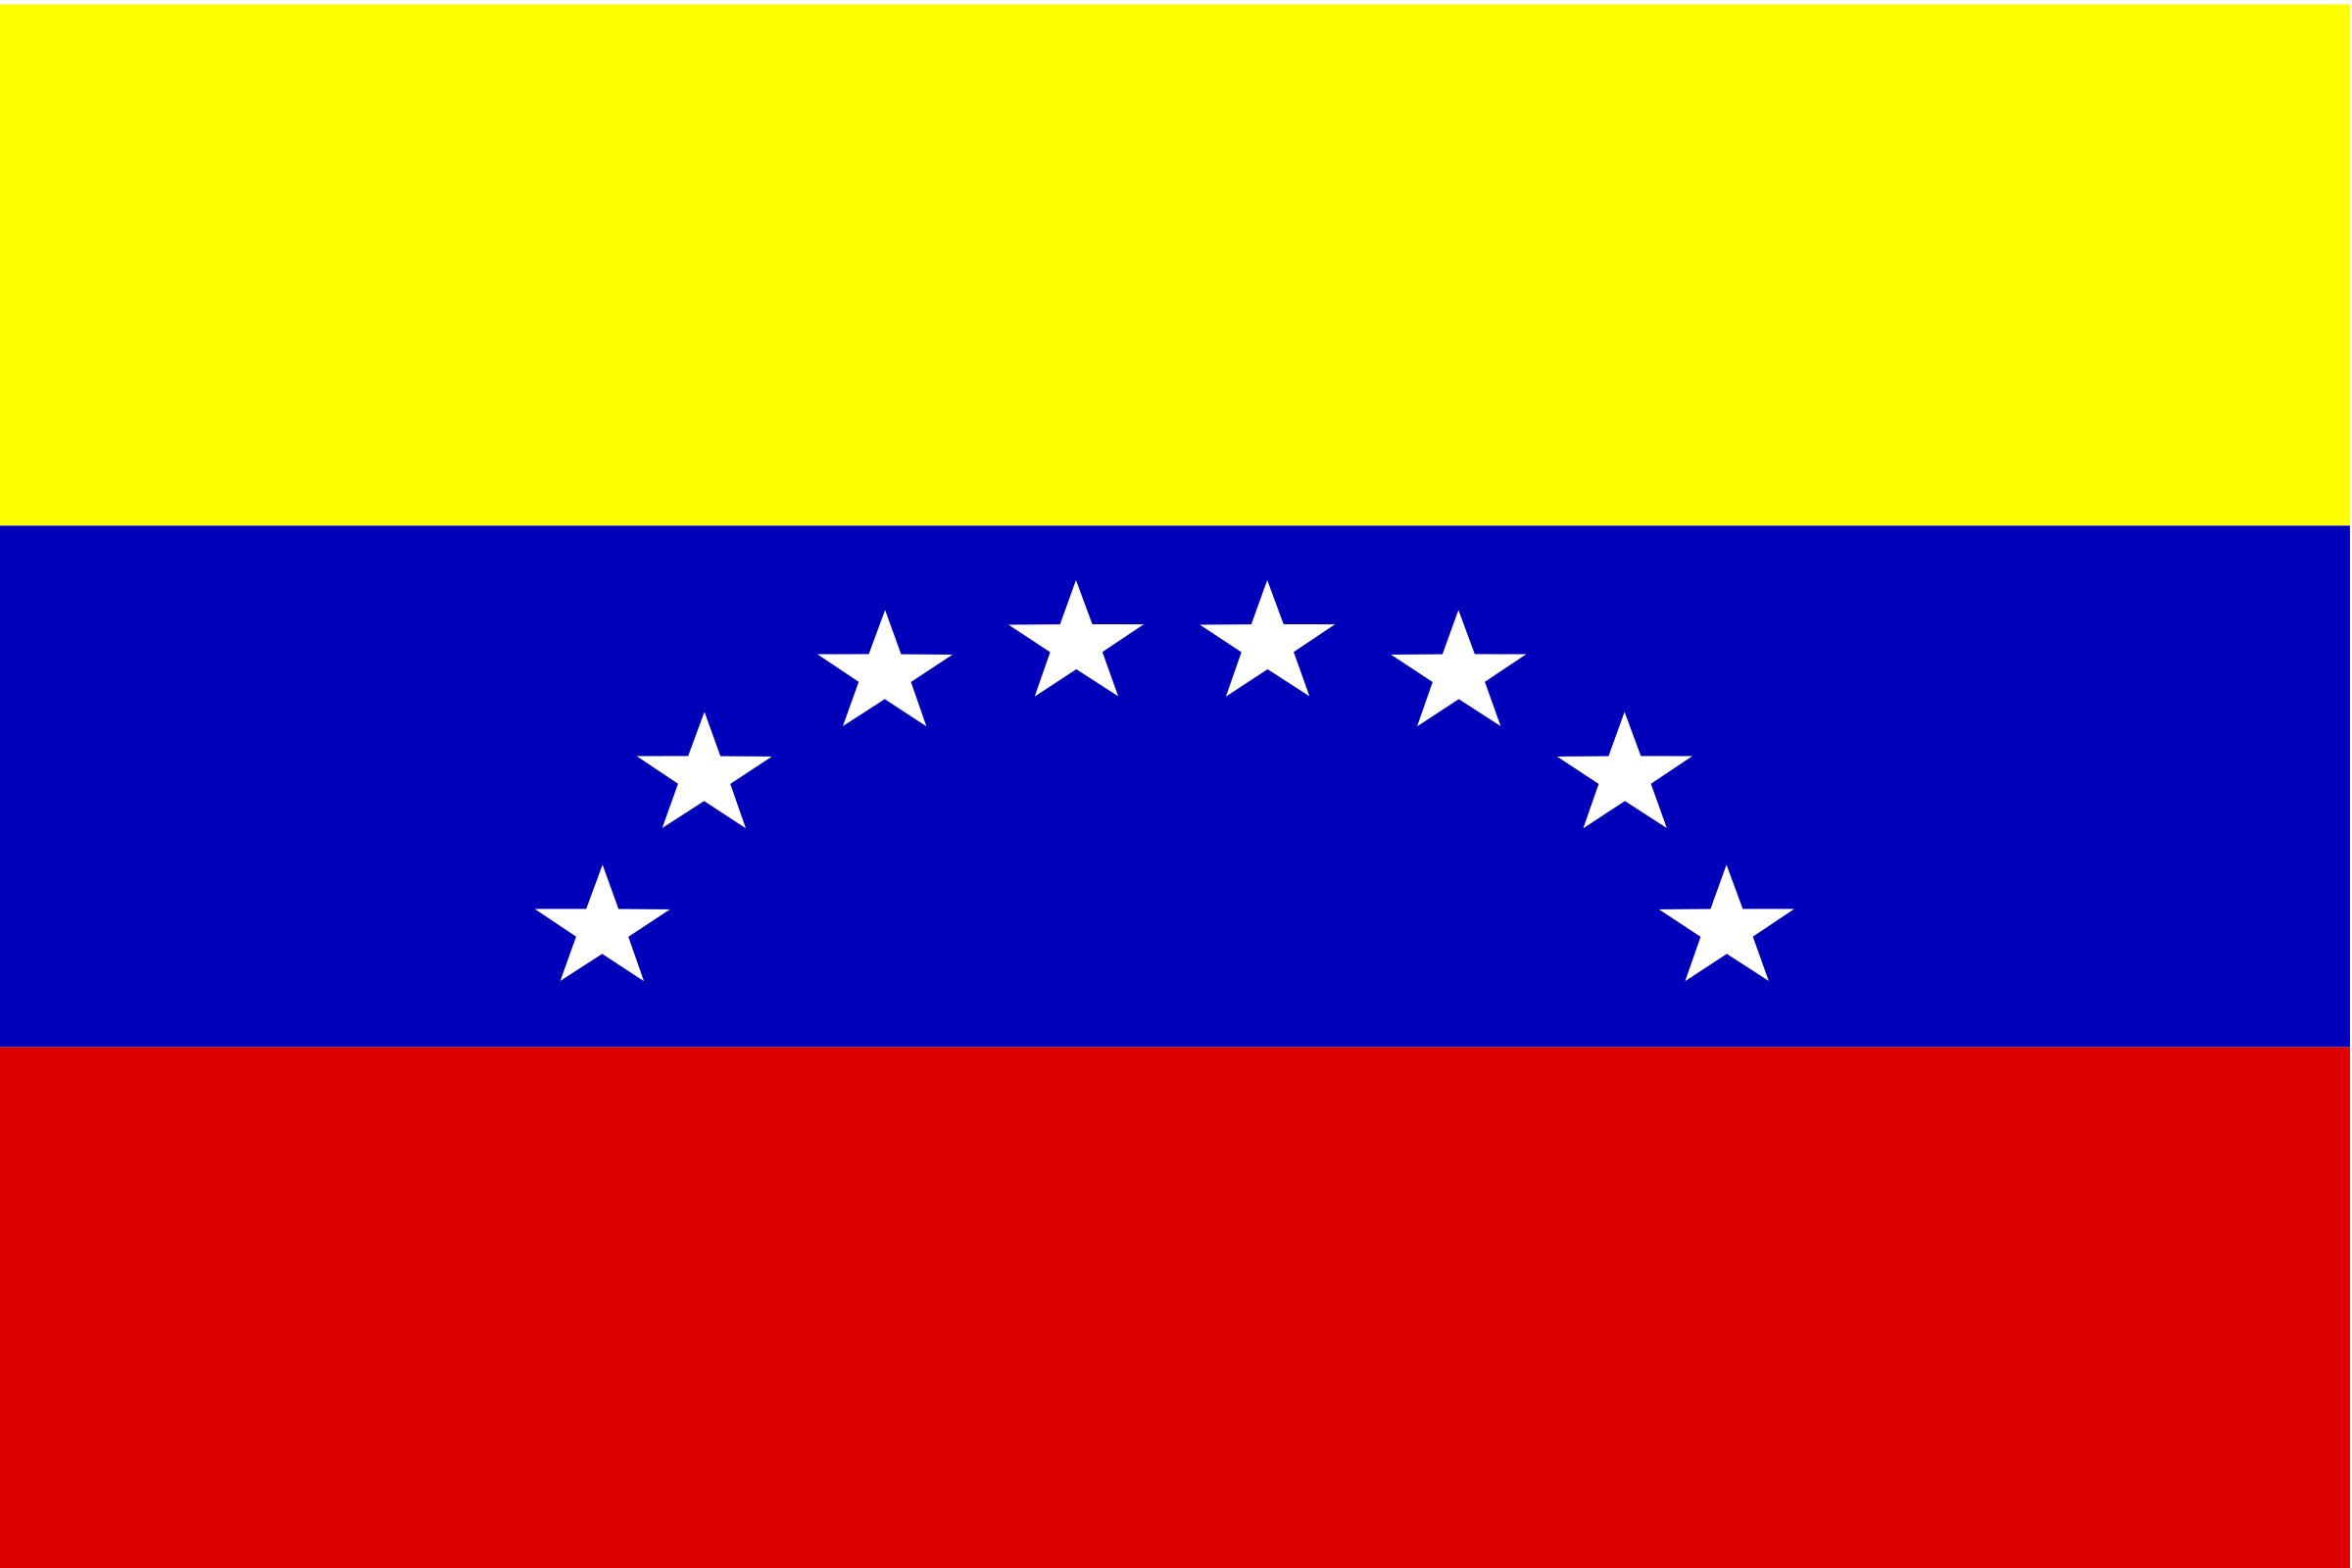 Download image Logos Bandera De Venezuela PC, Android, iPhone and iPad ...